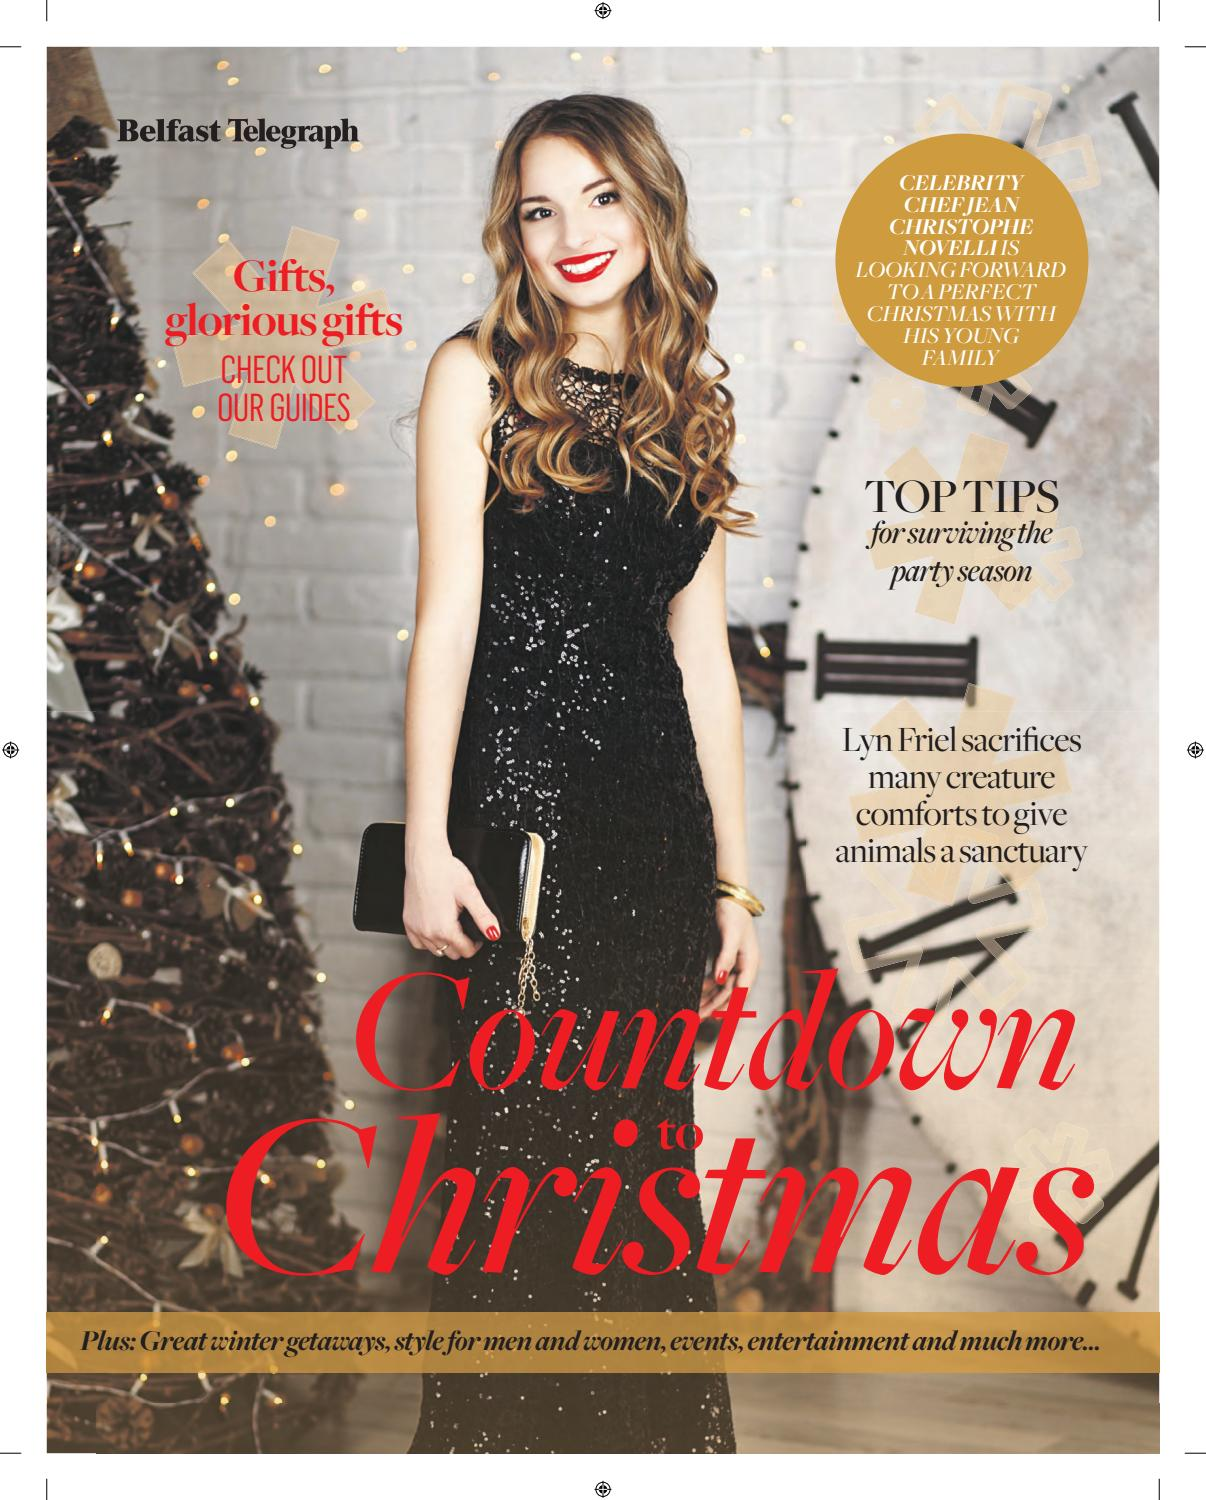 3ab83364d023a Countdown to Christmas by Belfast Telegraph - issuu